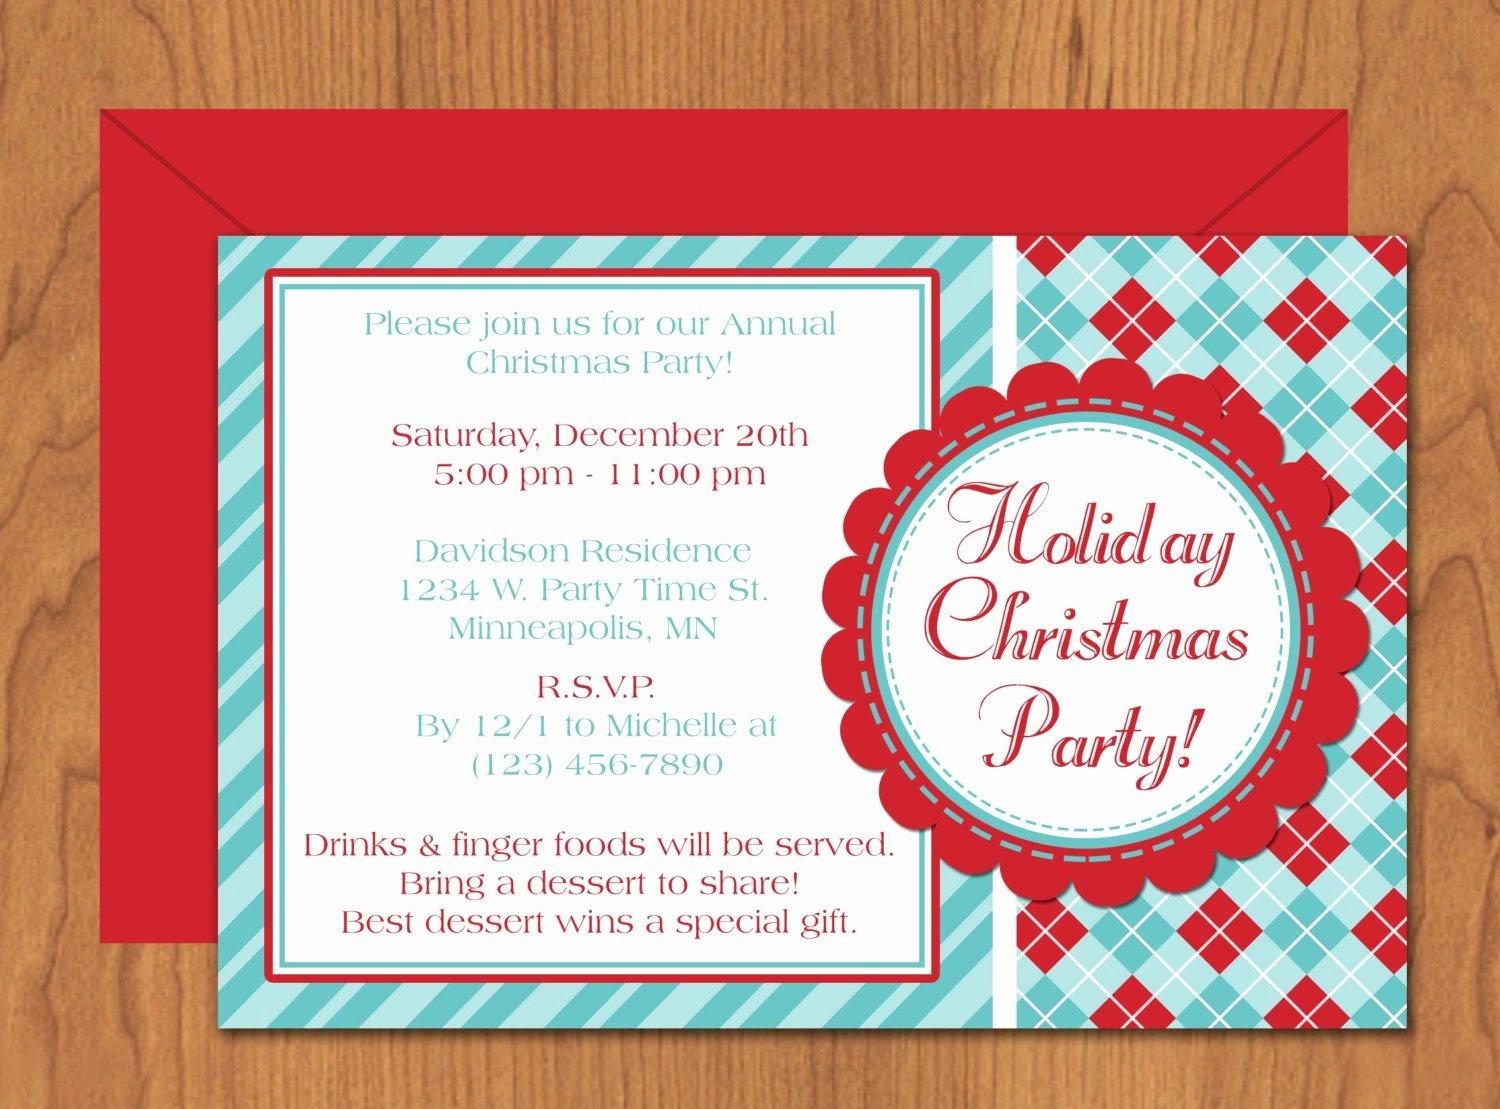 Holiday Party Invite Template Best Of Christmas Party Invitation Editable Template Microsoft